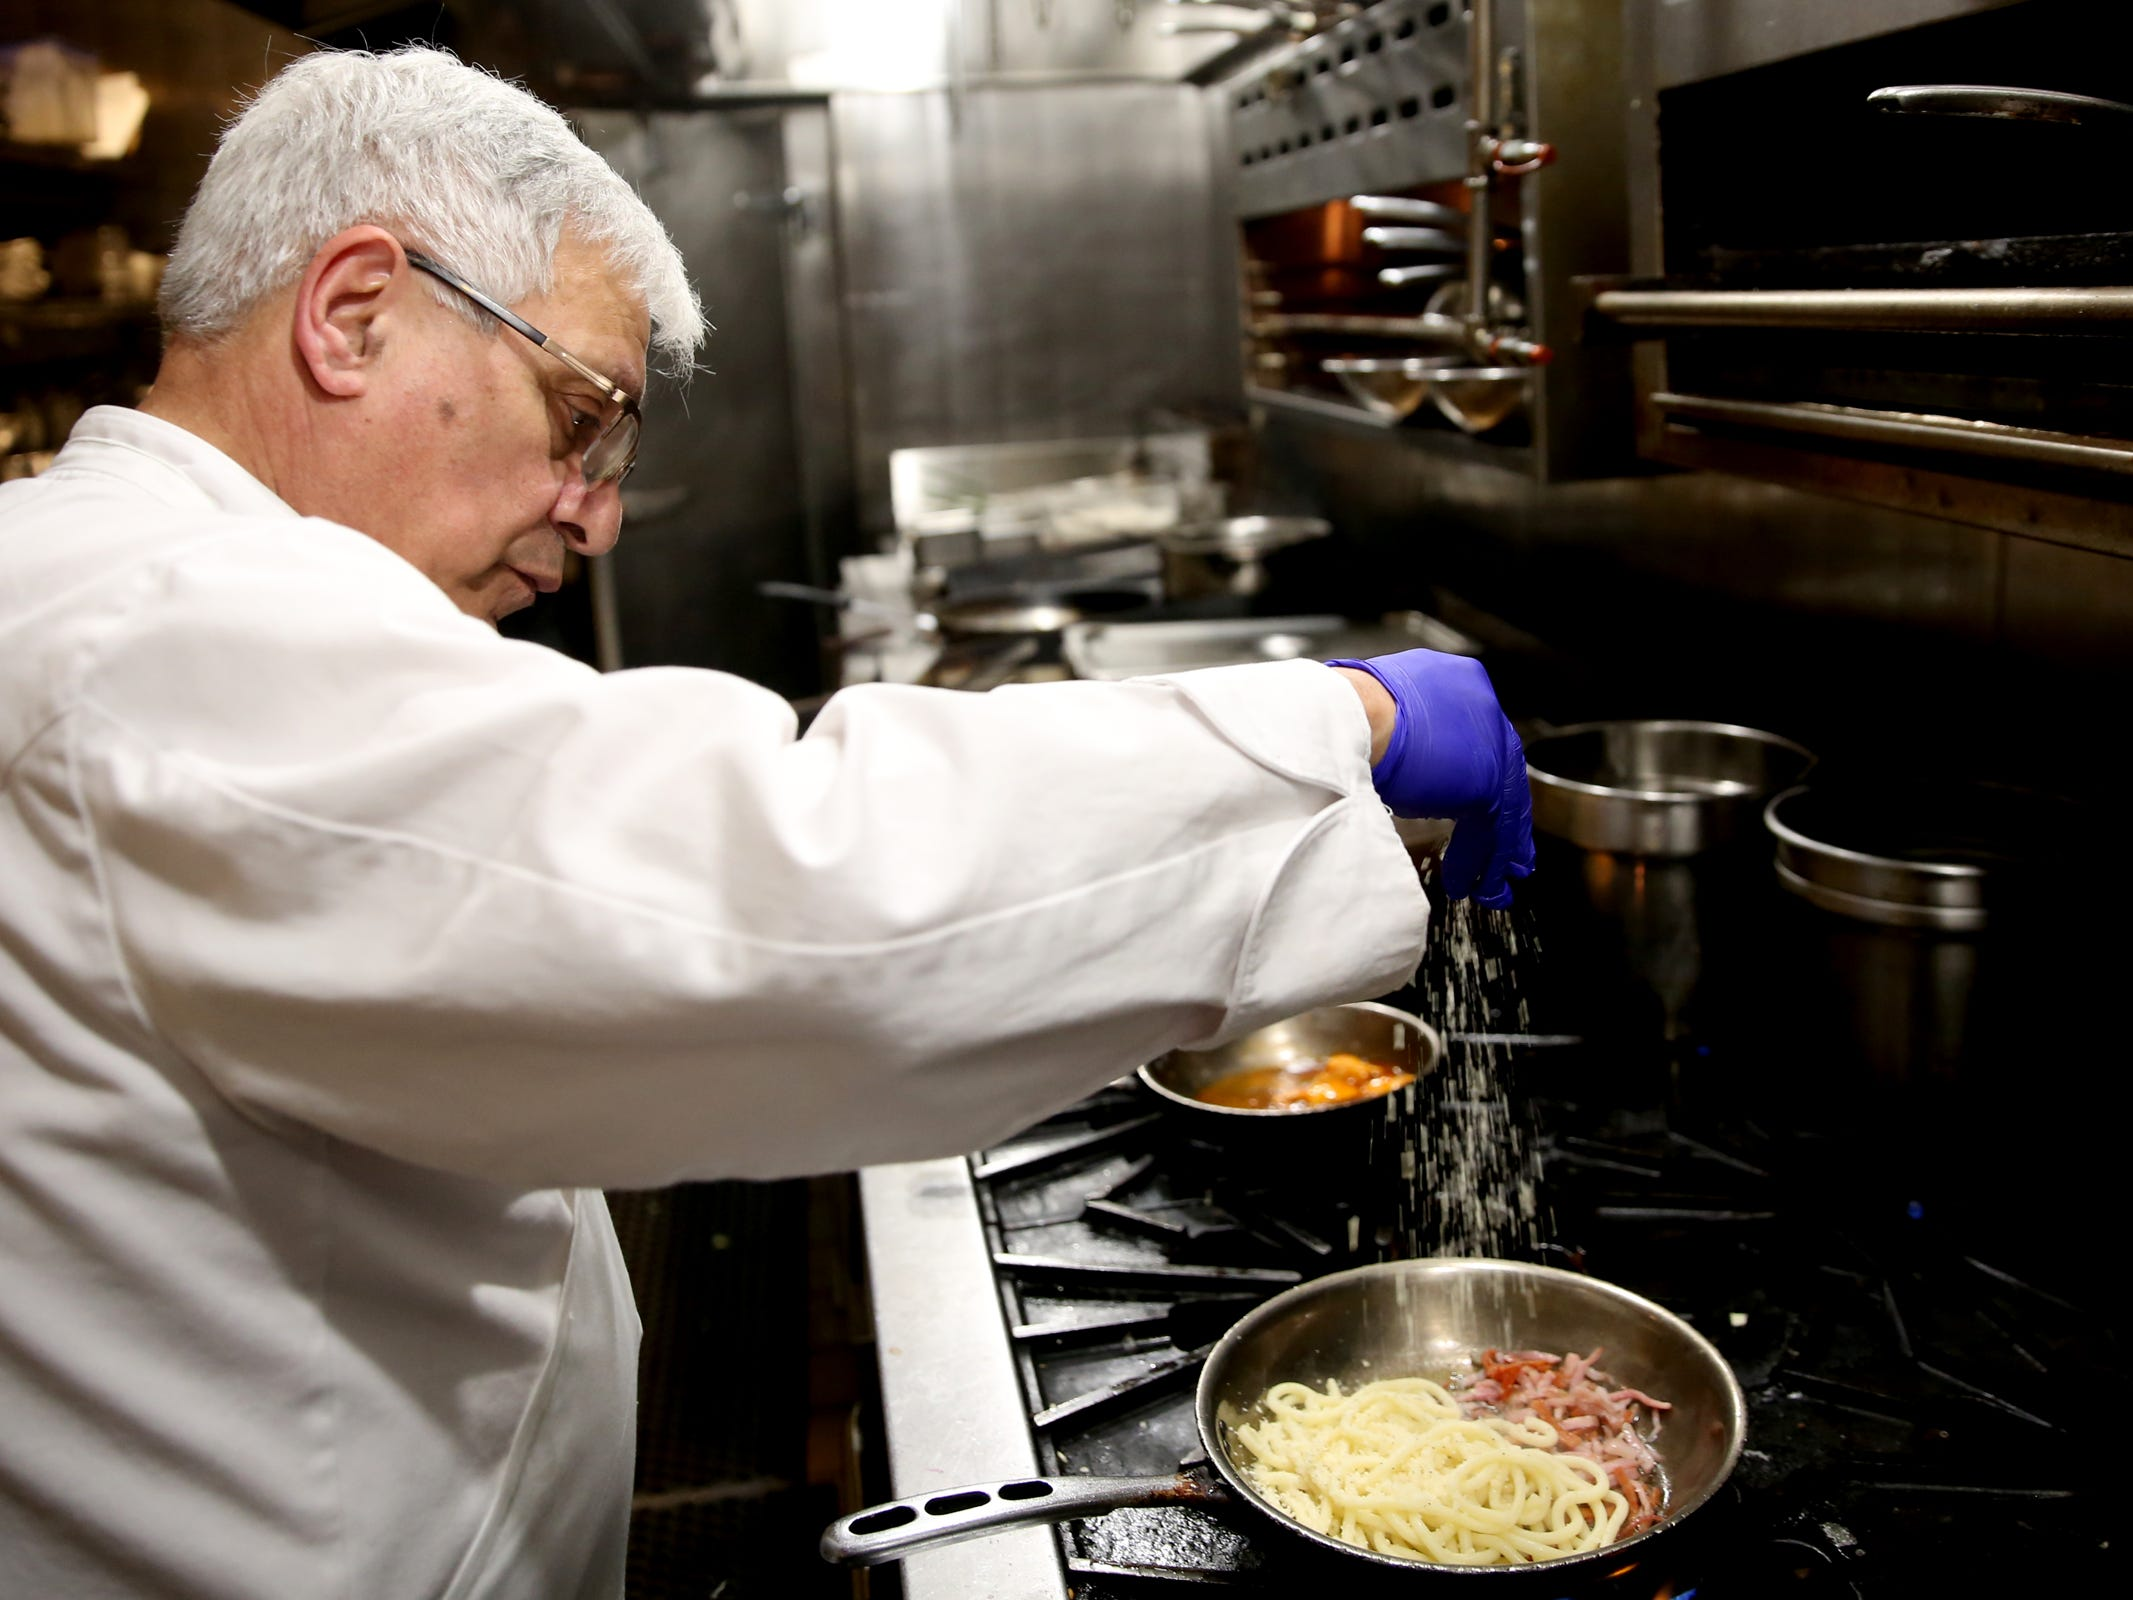 Executive chef Hans Afshar adds parmesan to a carbonara pasta at Bentley's Grill in Salem on Friday, Feb. 15, 2019.